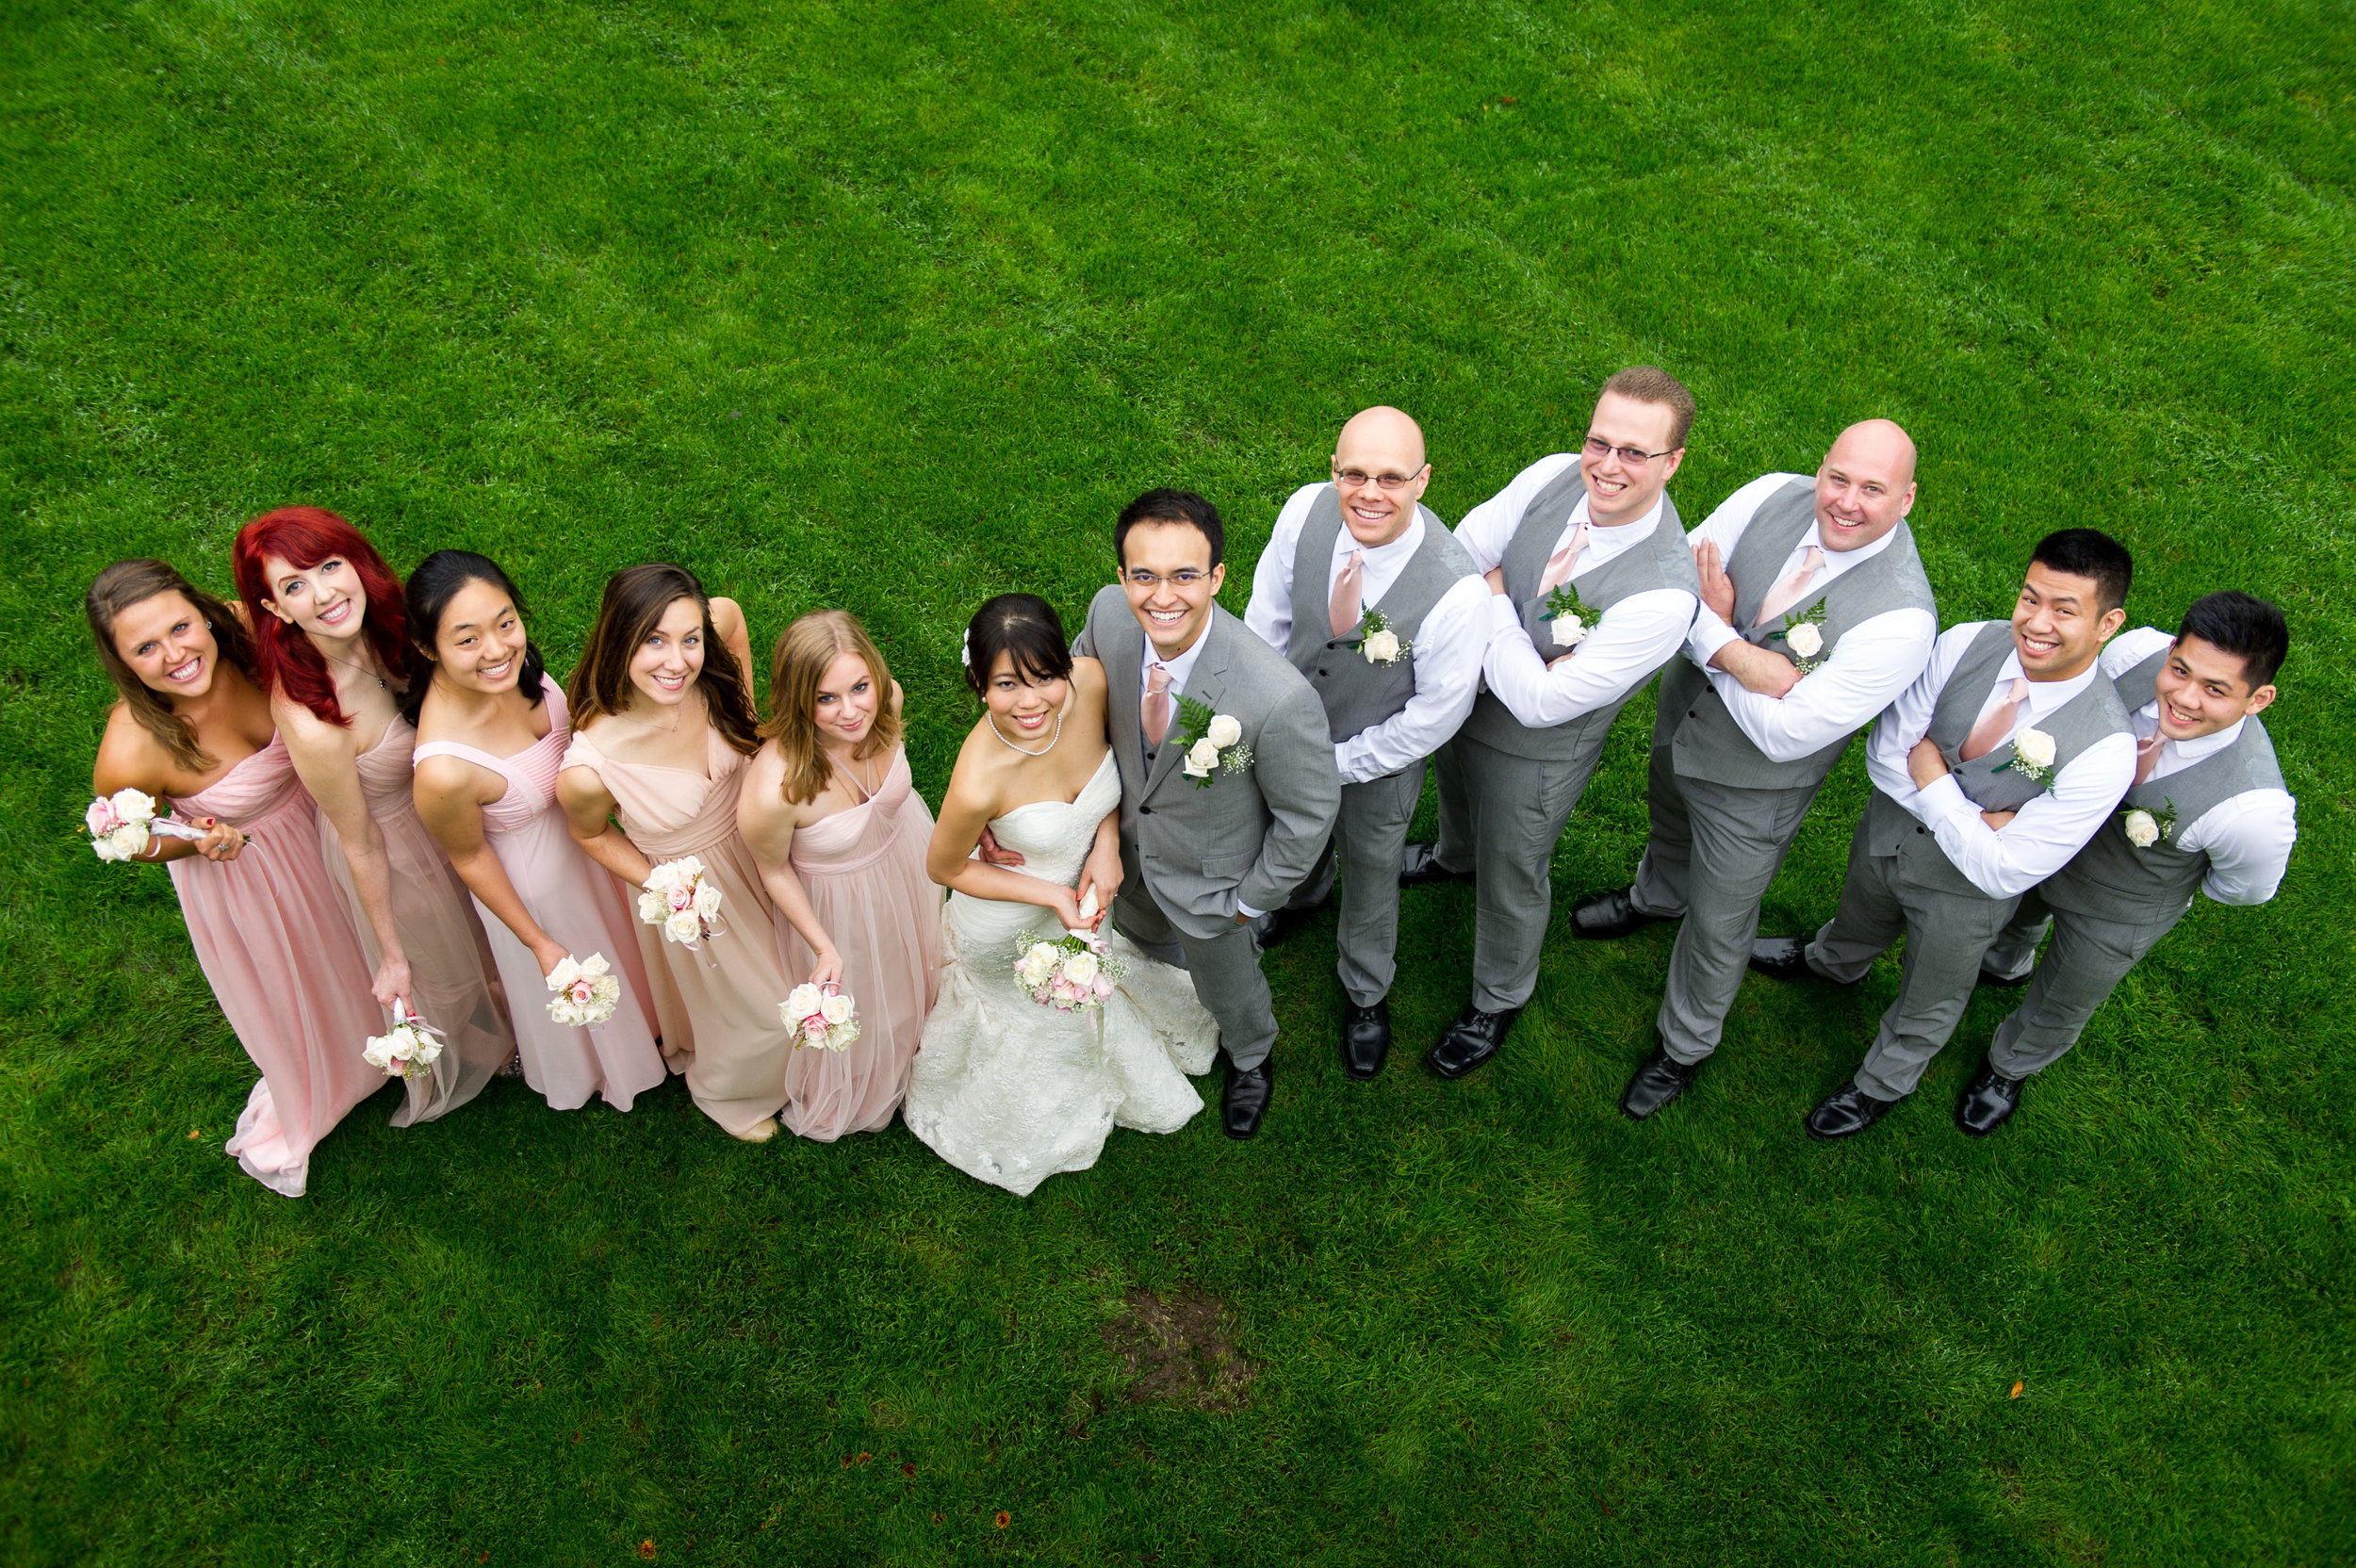 Tiffany and Chris Nature Outdoors Pacific Northwest Wedding Party Fun Portrait in Washington